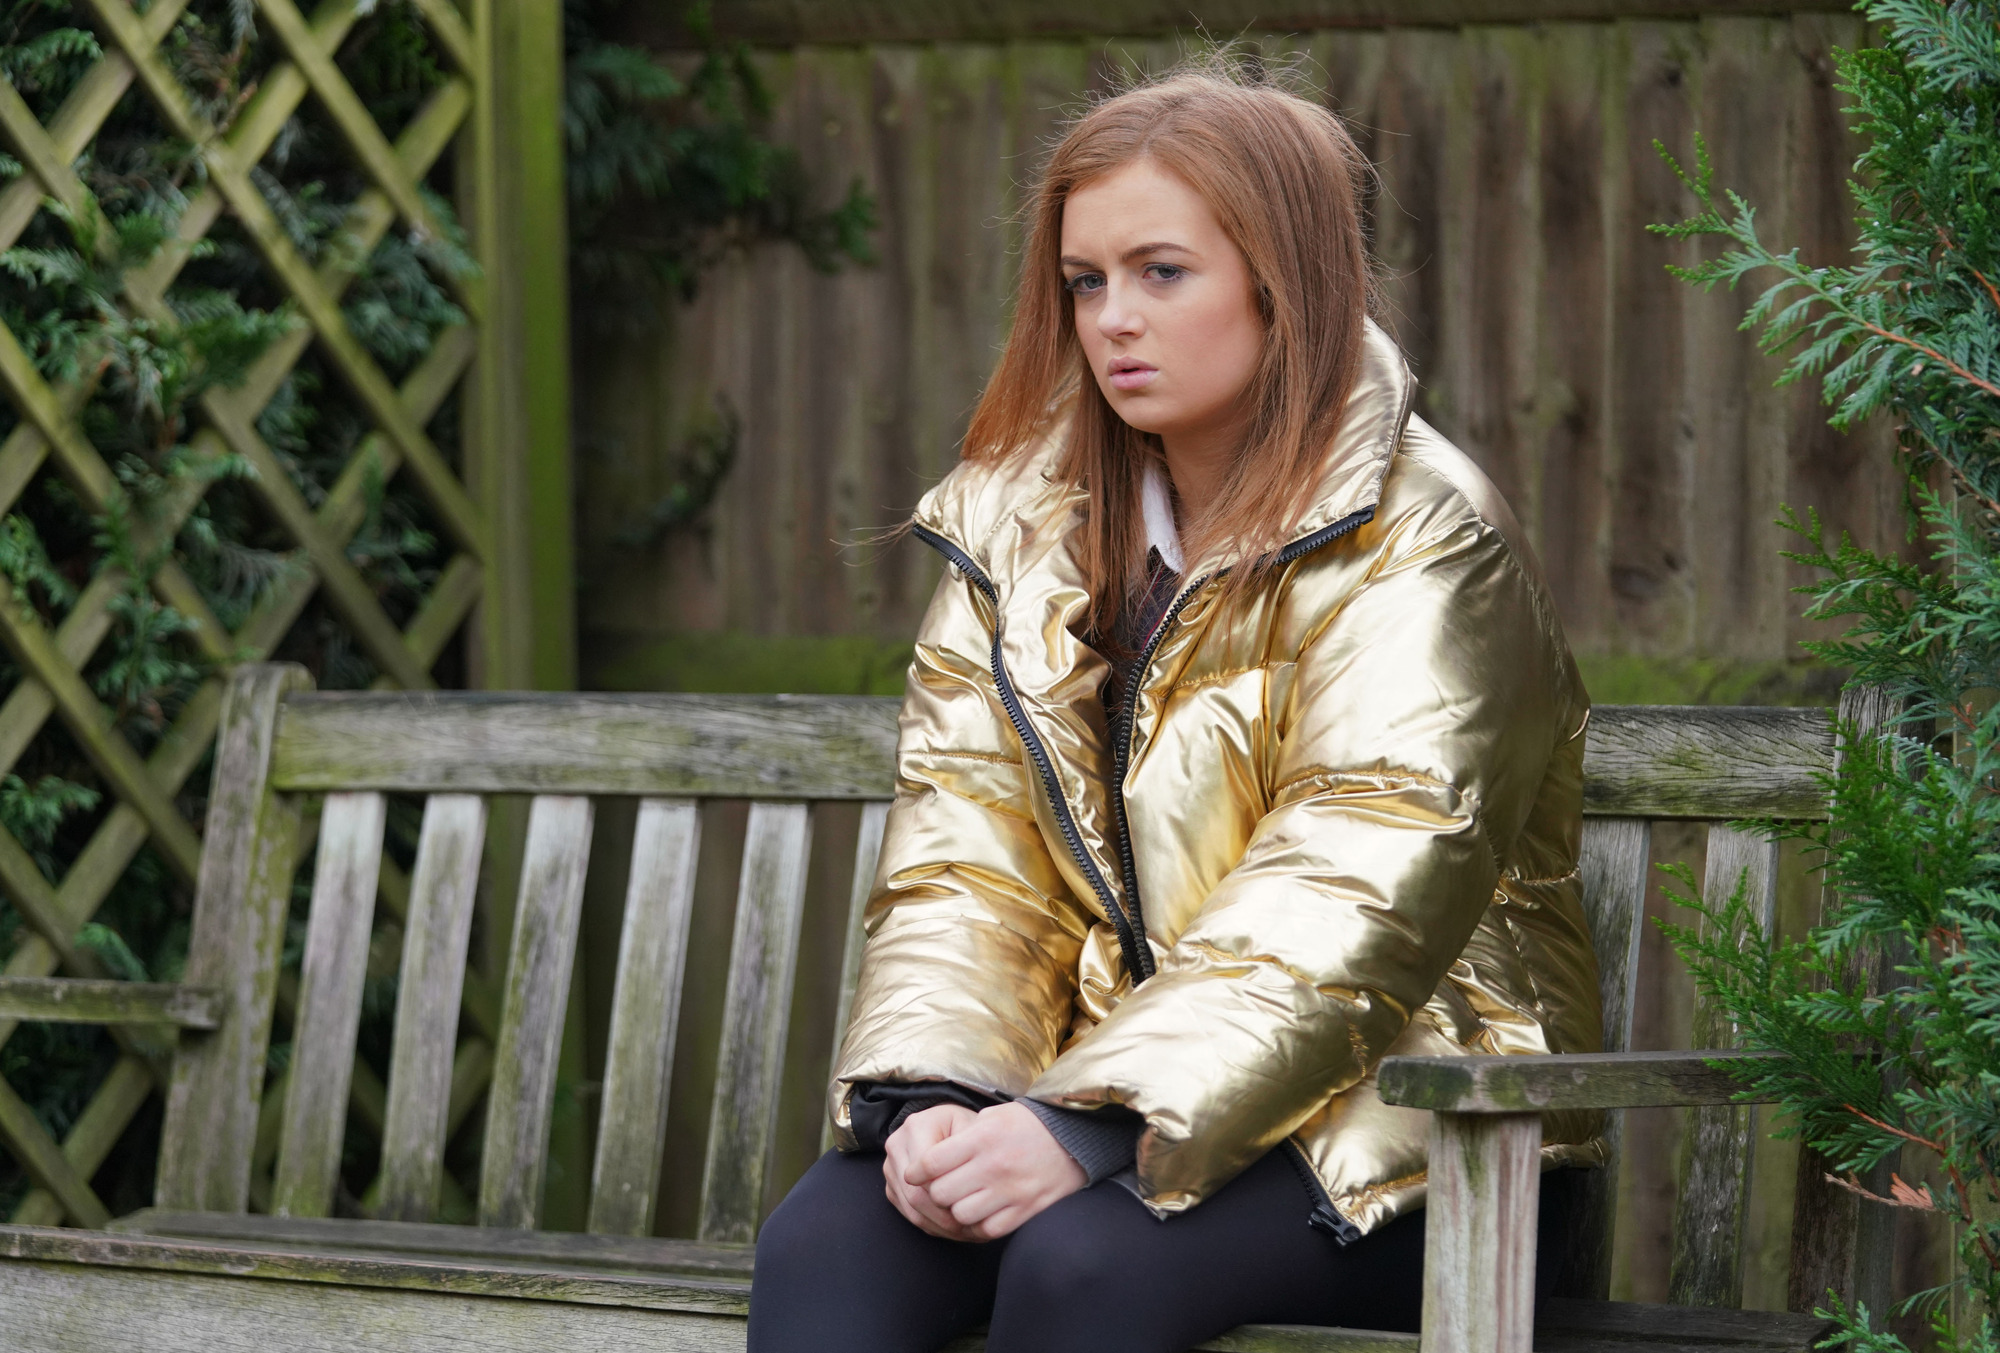 Tiffany Butcher in EastEnders